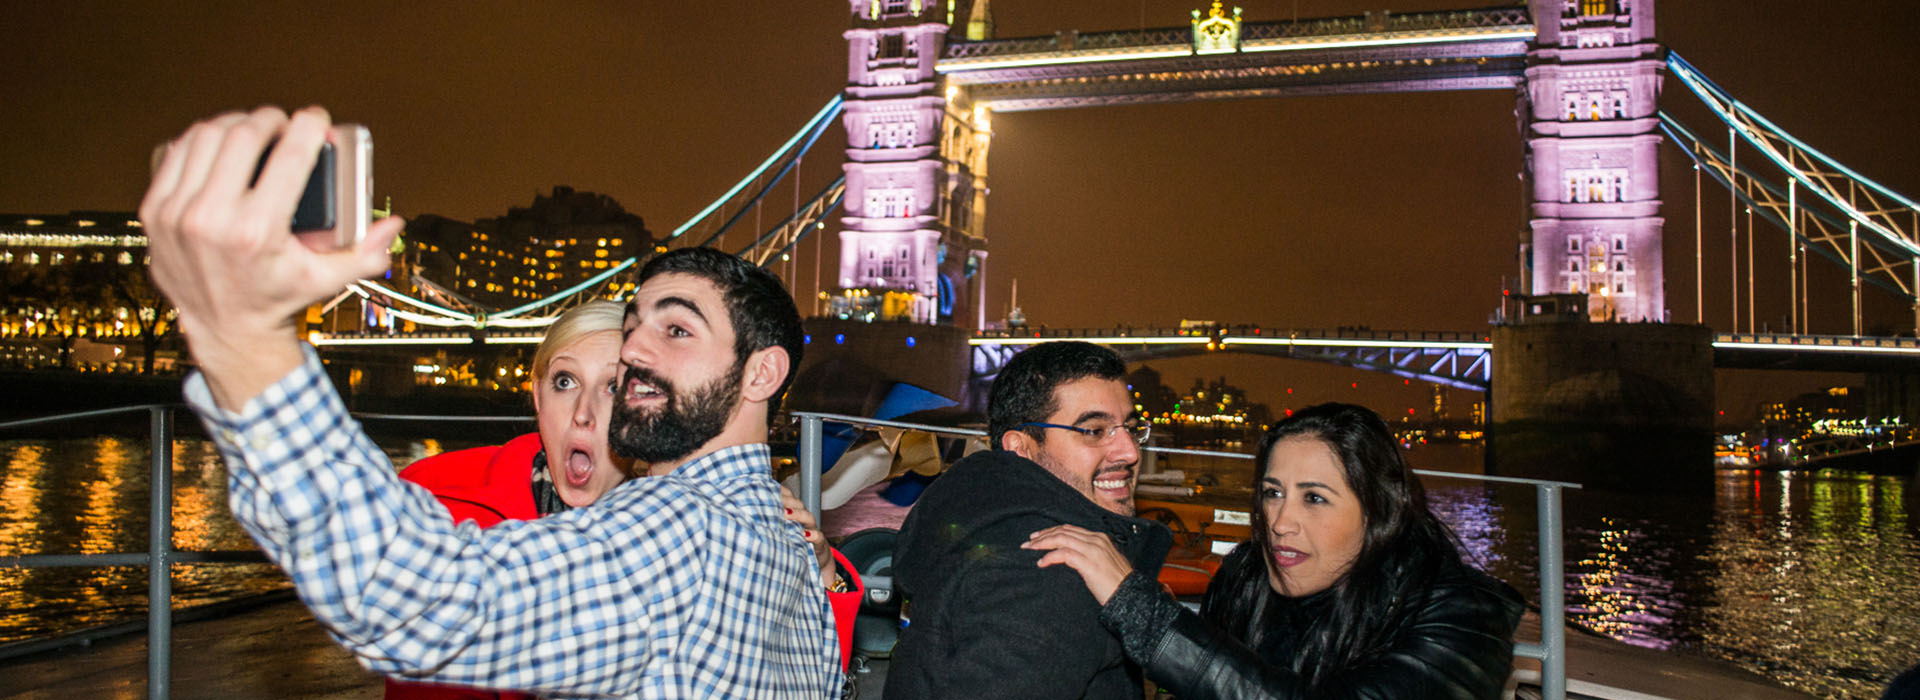 Thames Christmas Boat Parties - Festive Fun on the River Thames, London